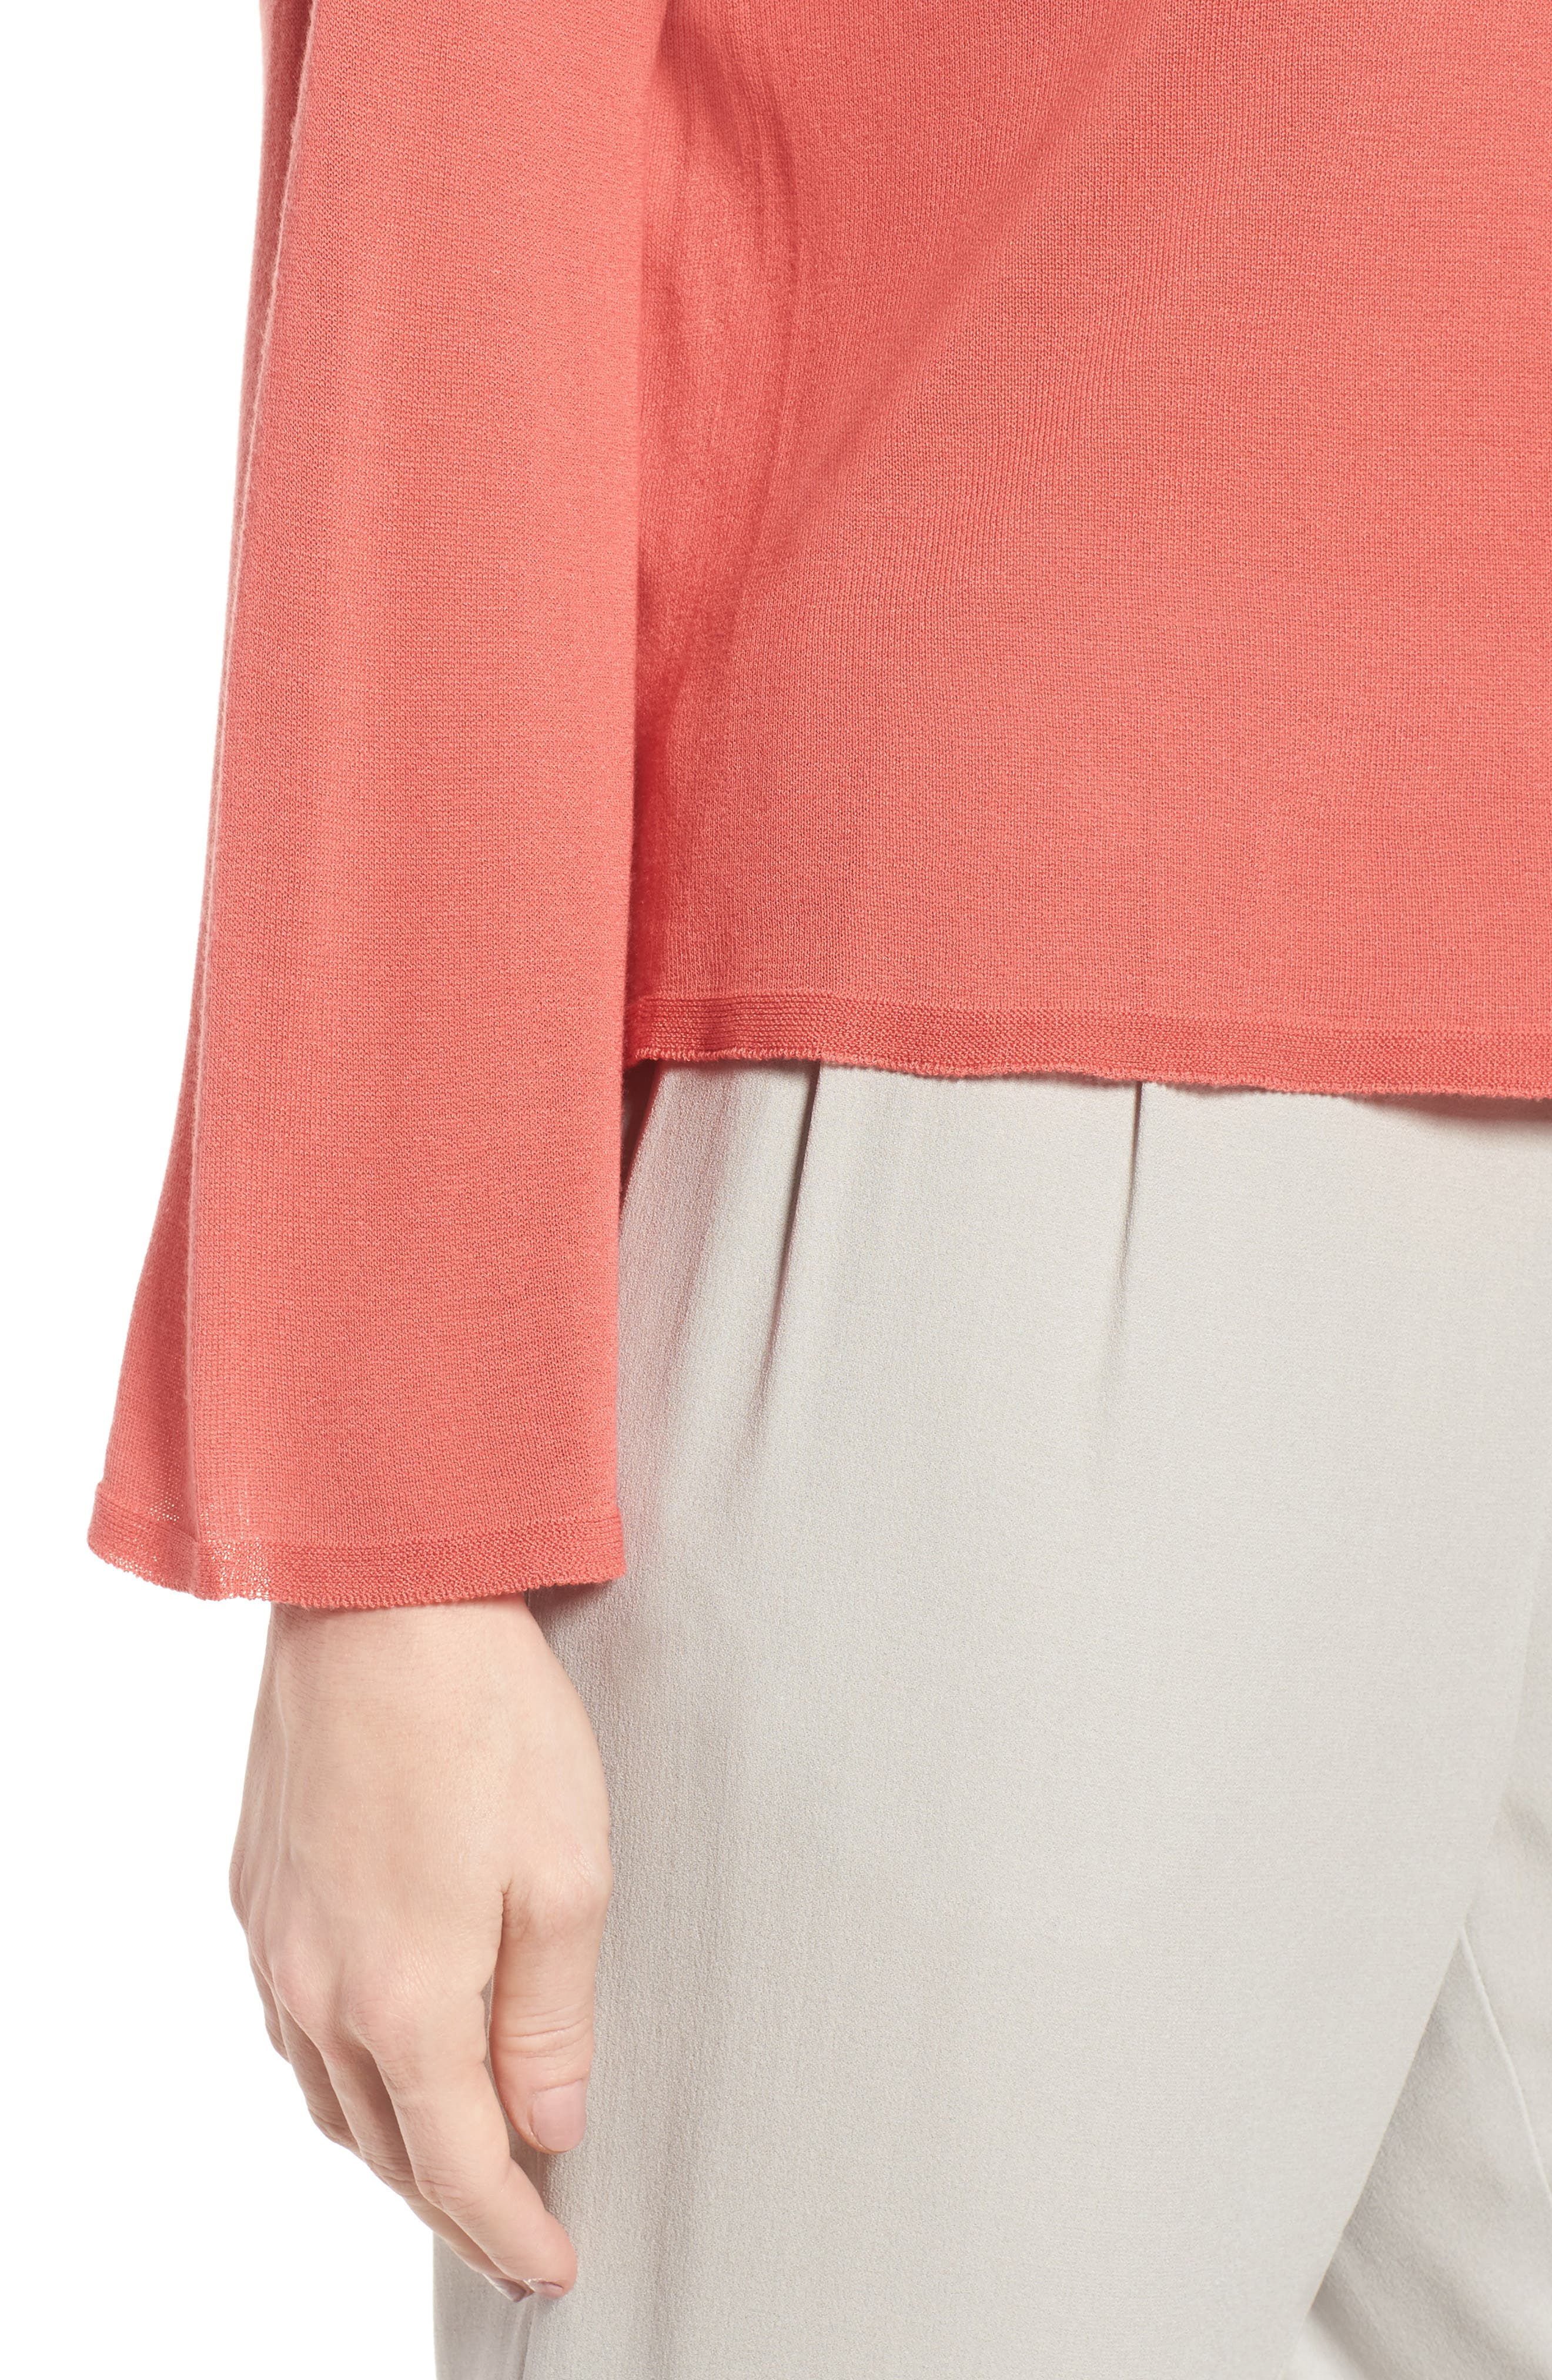 Tencel<sup>®</sup> Lyocell Knit Sweater,                             Alternate thumbnail 12, color,